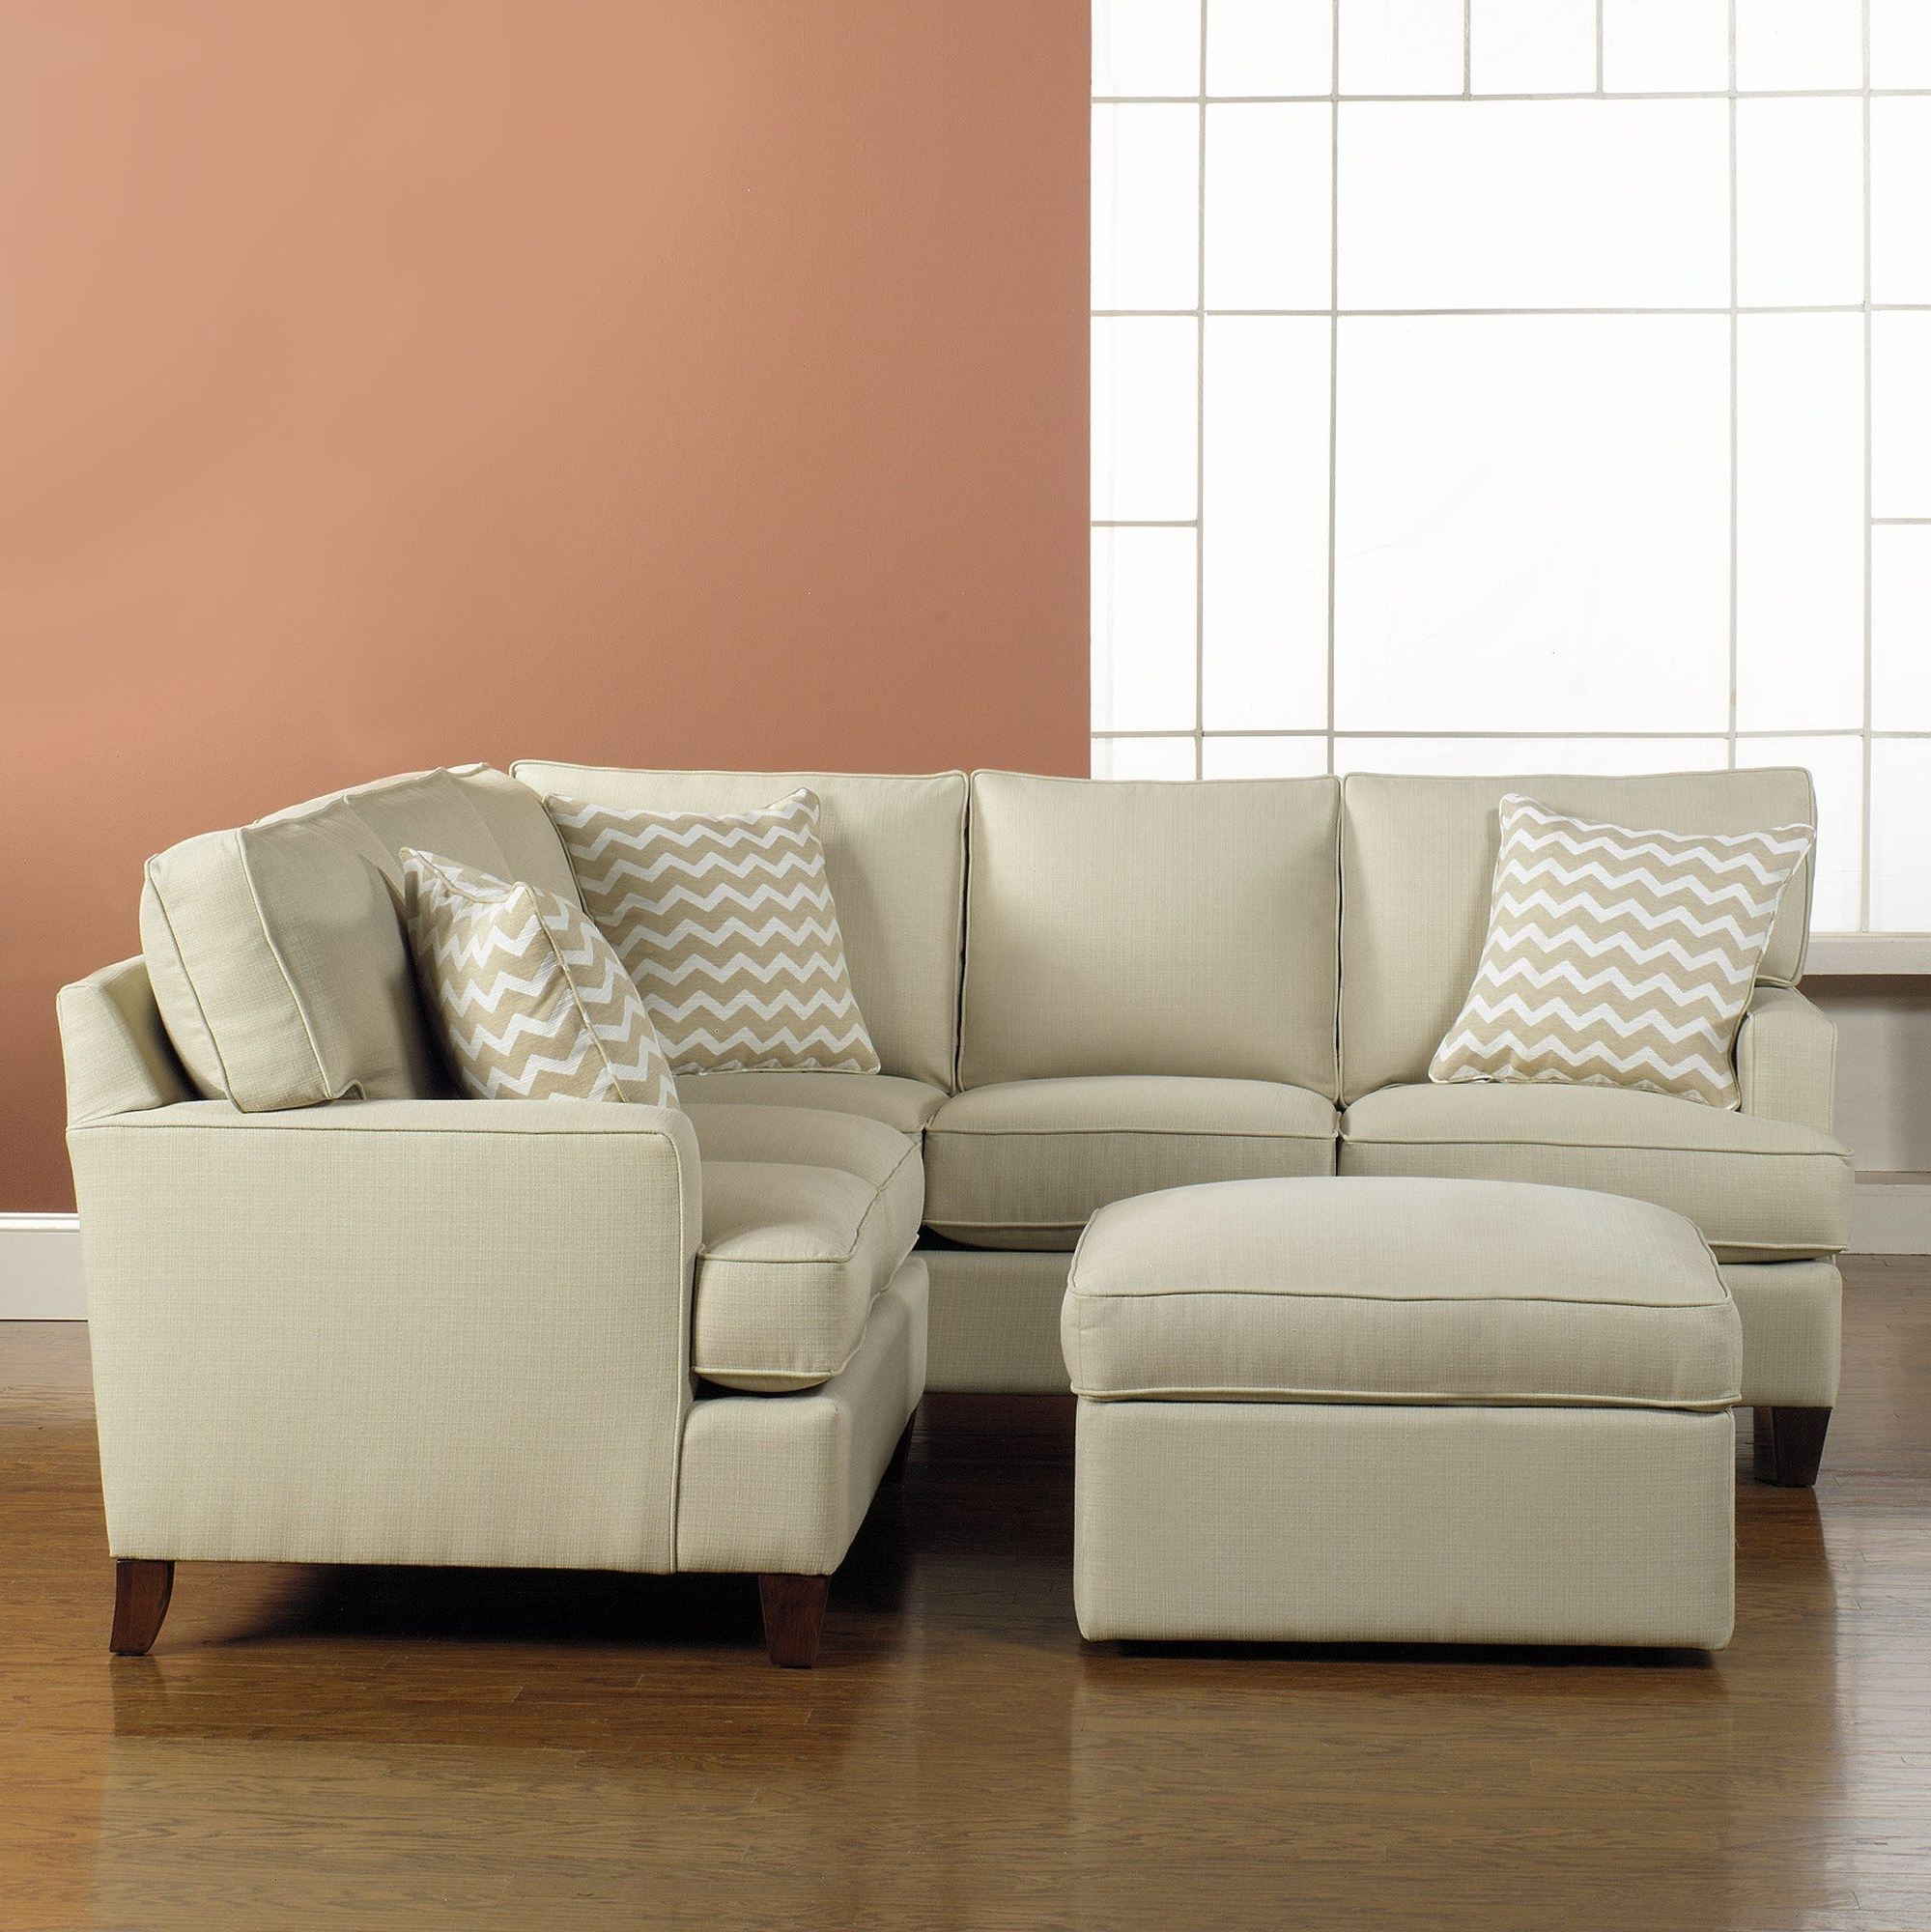 Small Sofas With Chaise Throughout Most Popular Apartment Size Sectional Sofa With Chaise Cheap Sectional Sofas (View 4 of 15)